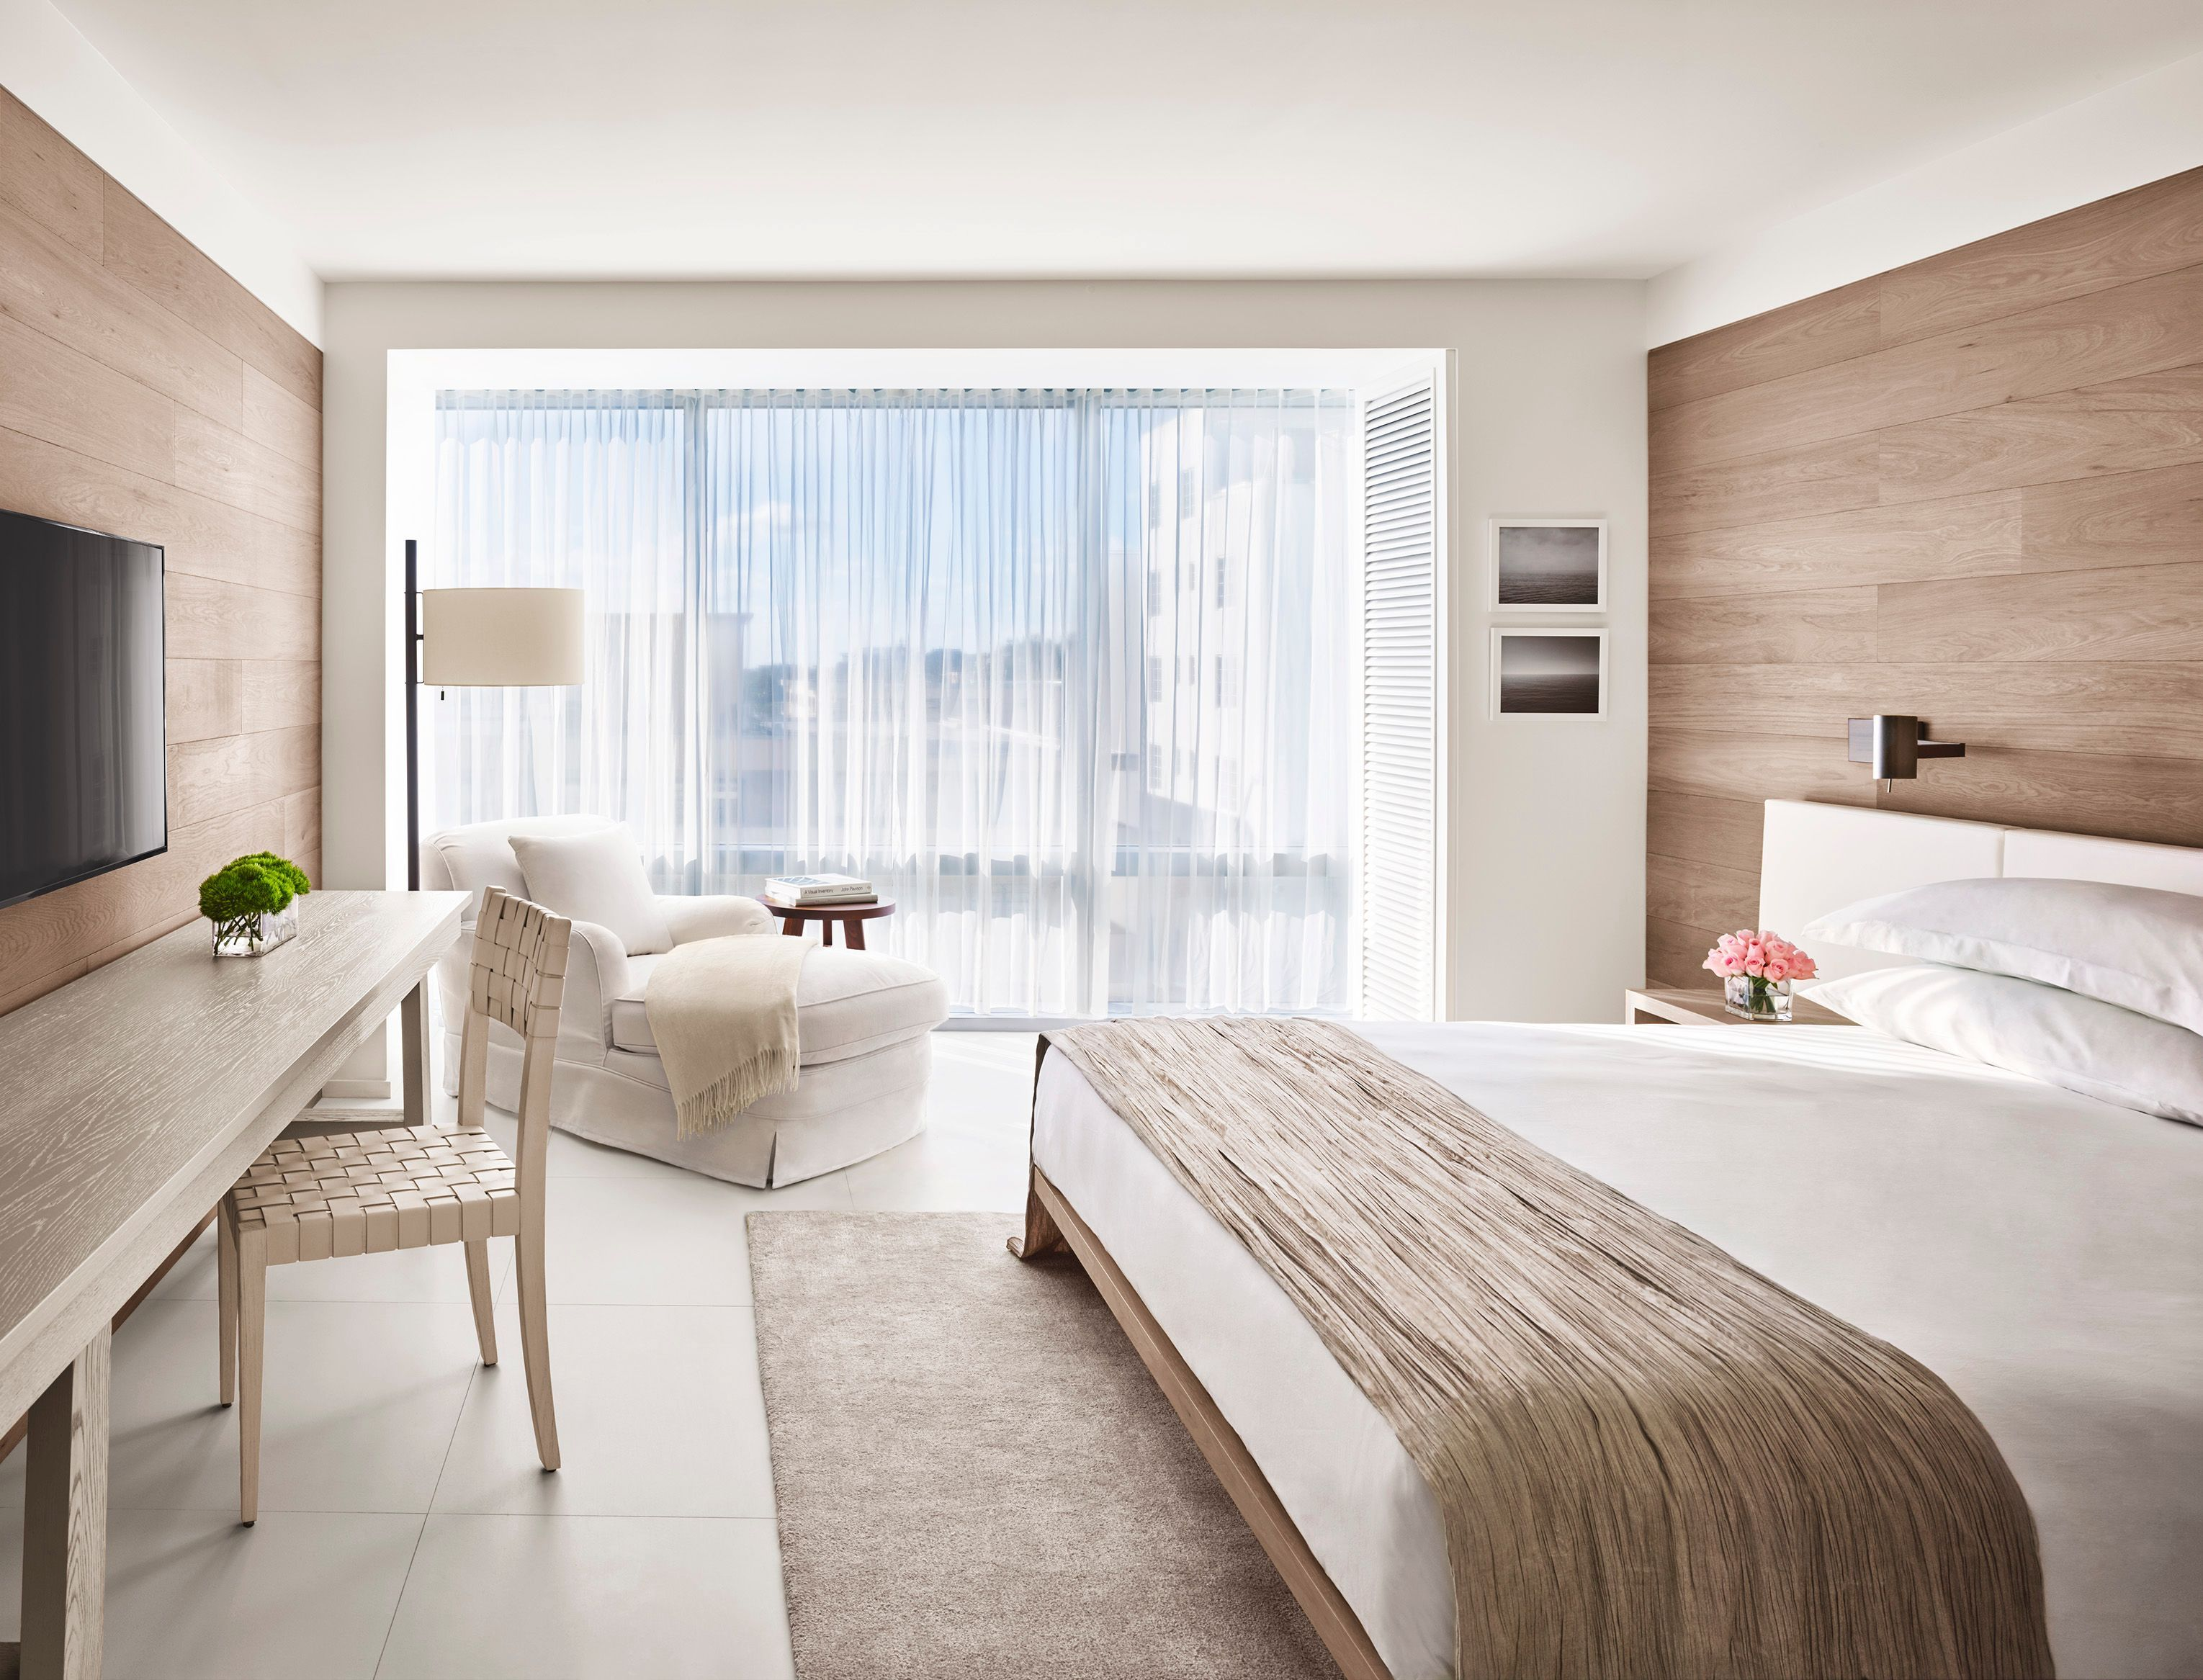 Yabu pushelberg the miami beach edition bedroom luxury for Boutique hotel design